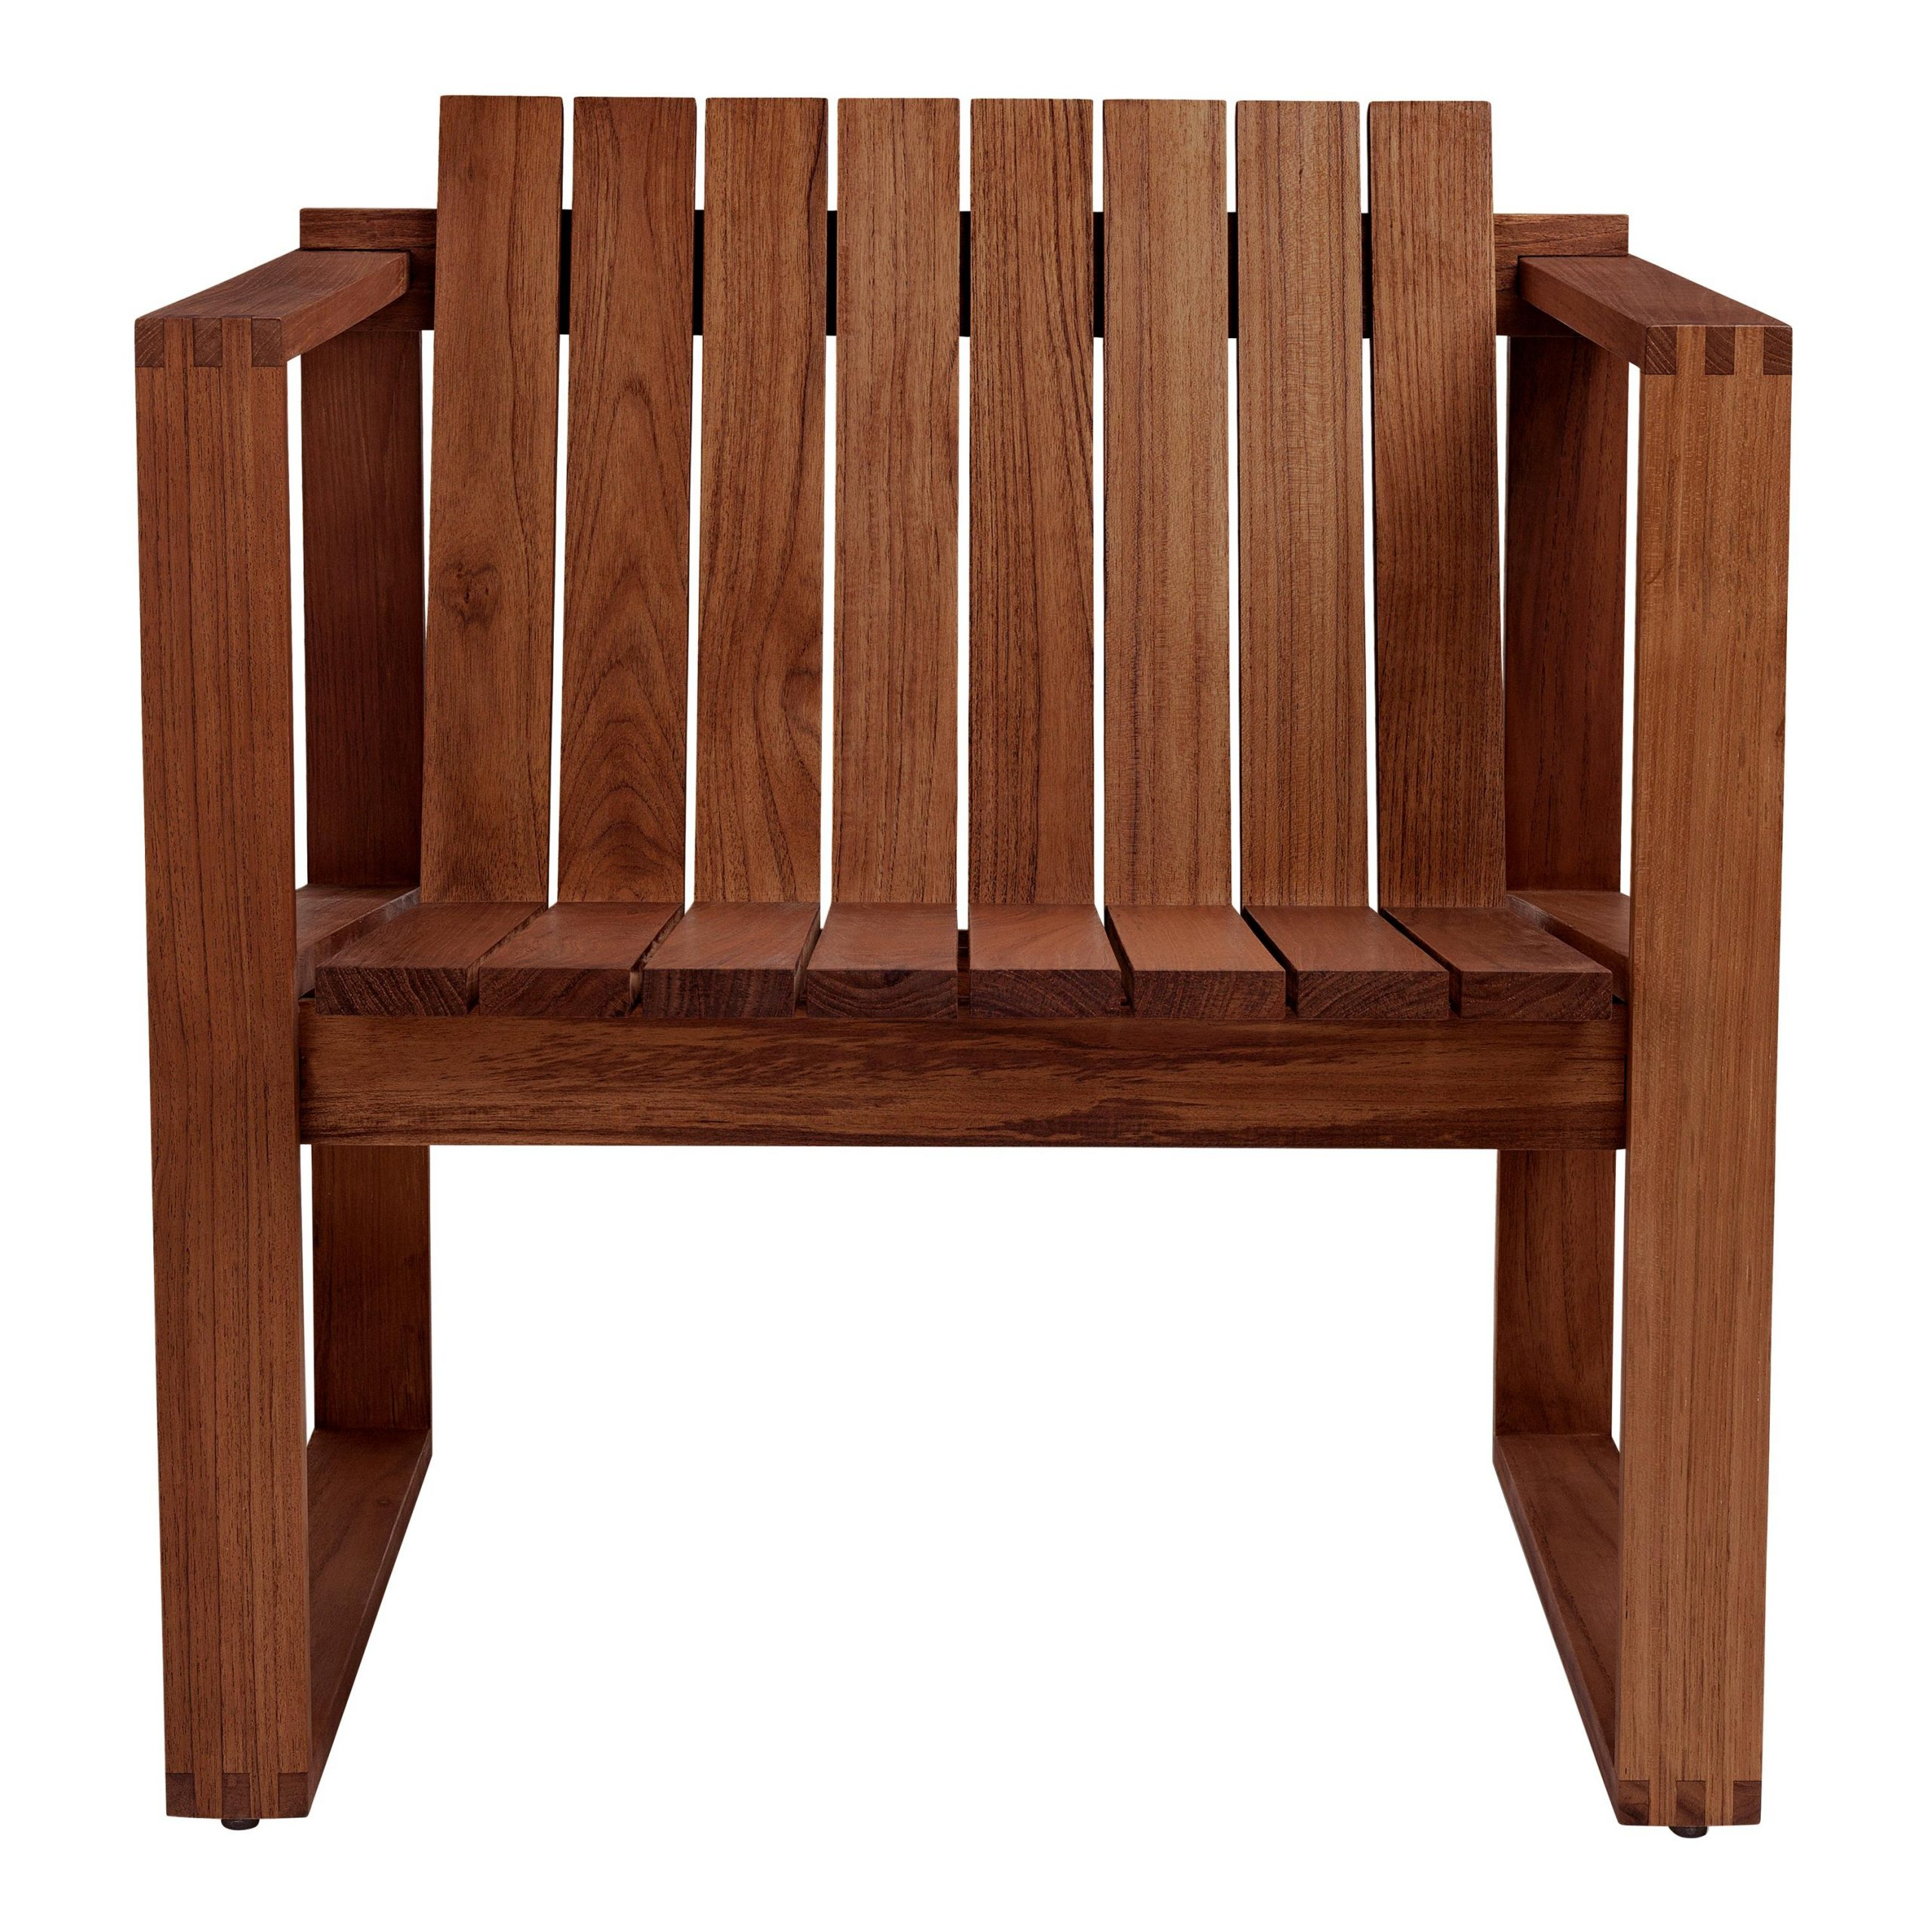 O.f.s. Lounge Chair – Folding Outdoor Chair With Regard To Most Up To Date 2 Person Light Teak Oil Wood Outdoor Swings (Gallery 27 of 30)